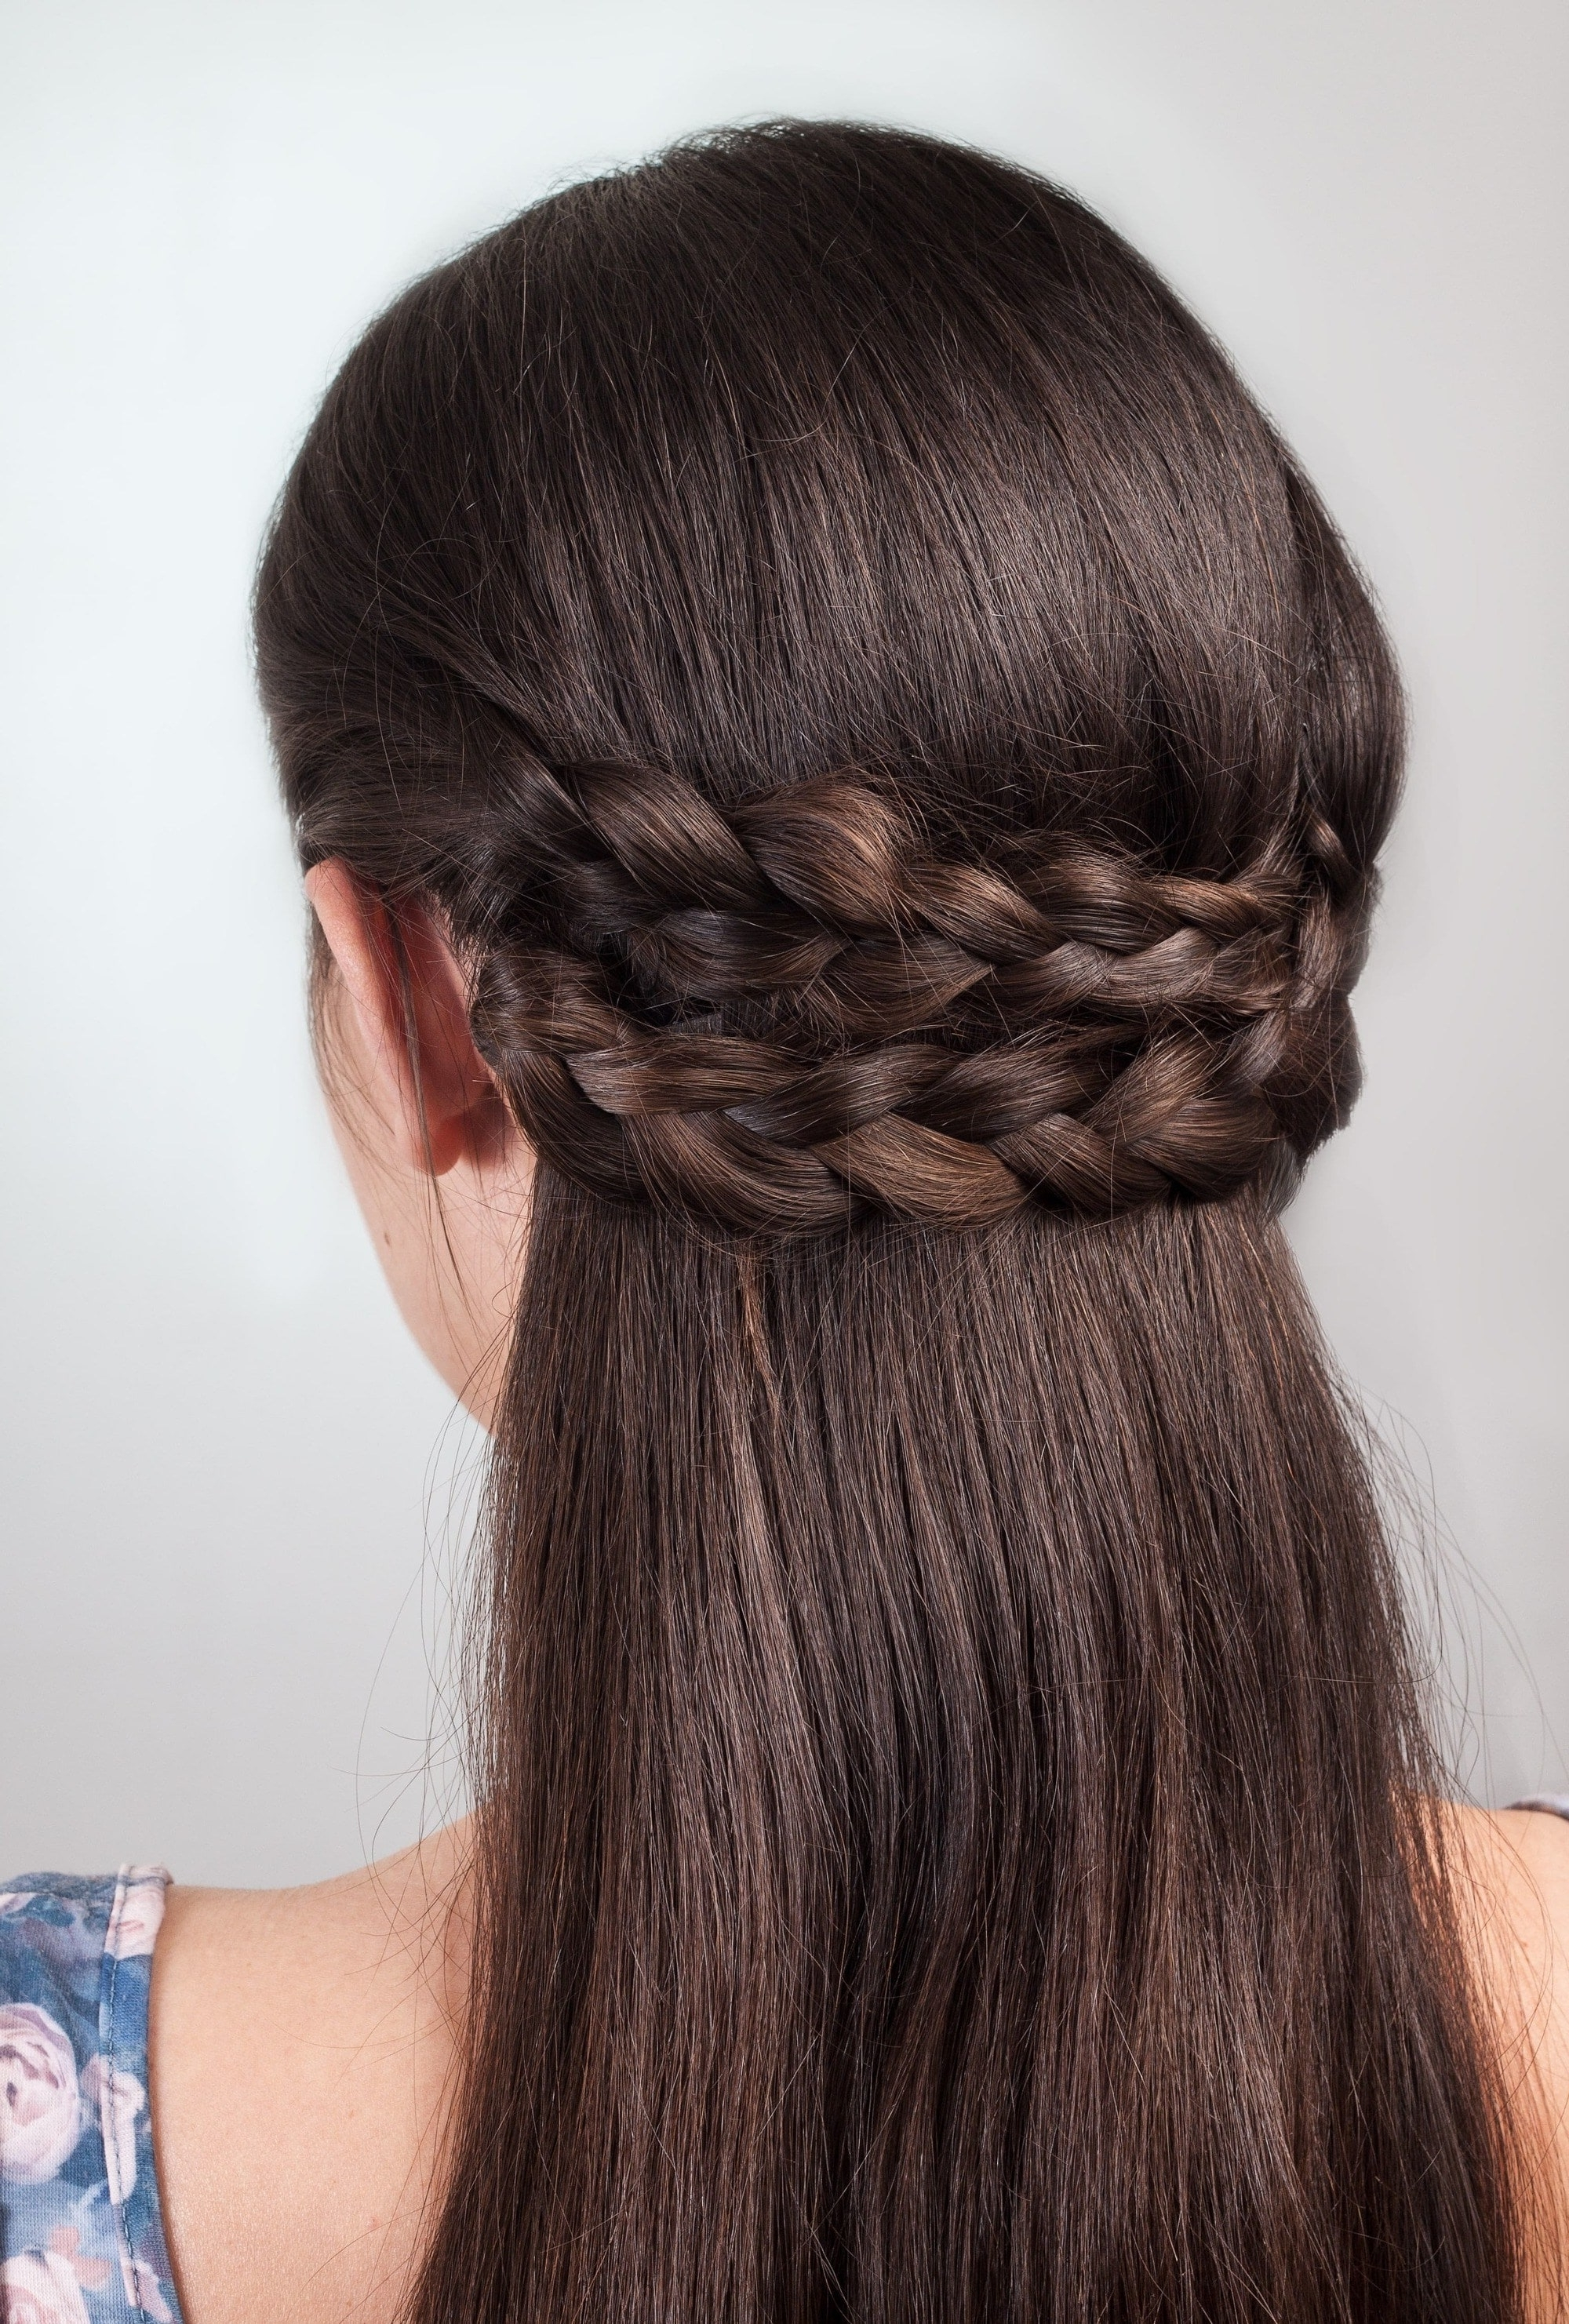 2018 Pair Of Braids With Wrapped Ponytail Inside Wedding Braids And Wedding Hair Trends To Inspire Your Hairstyle (View 15 of 15)